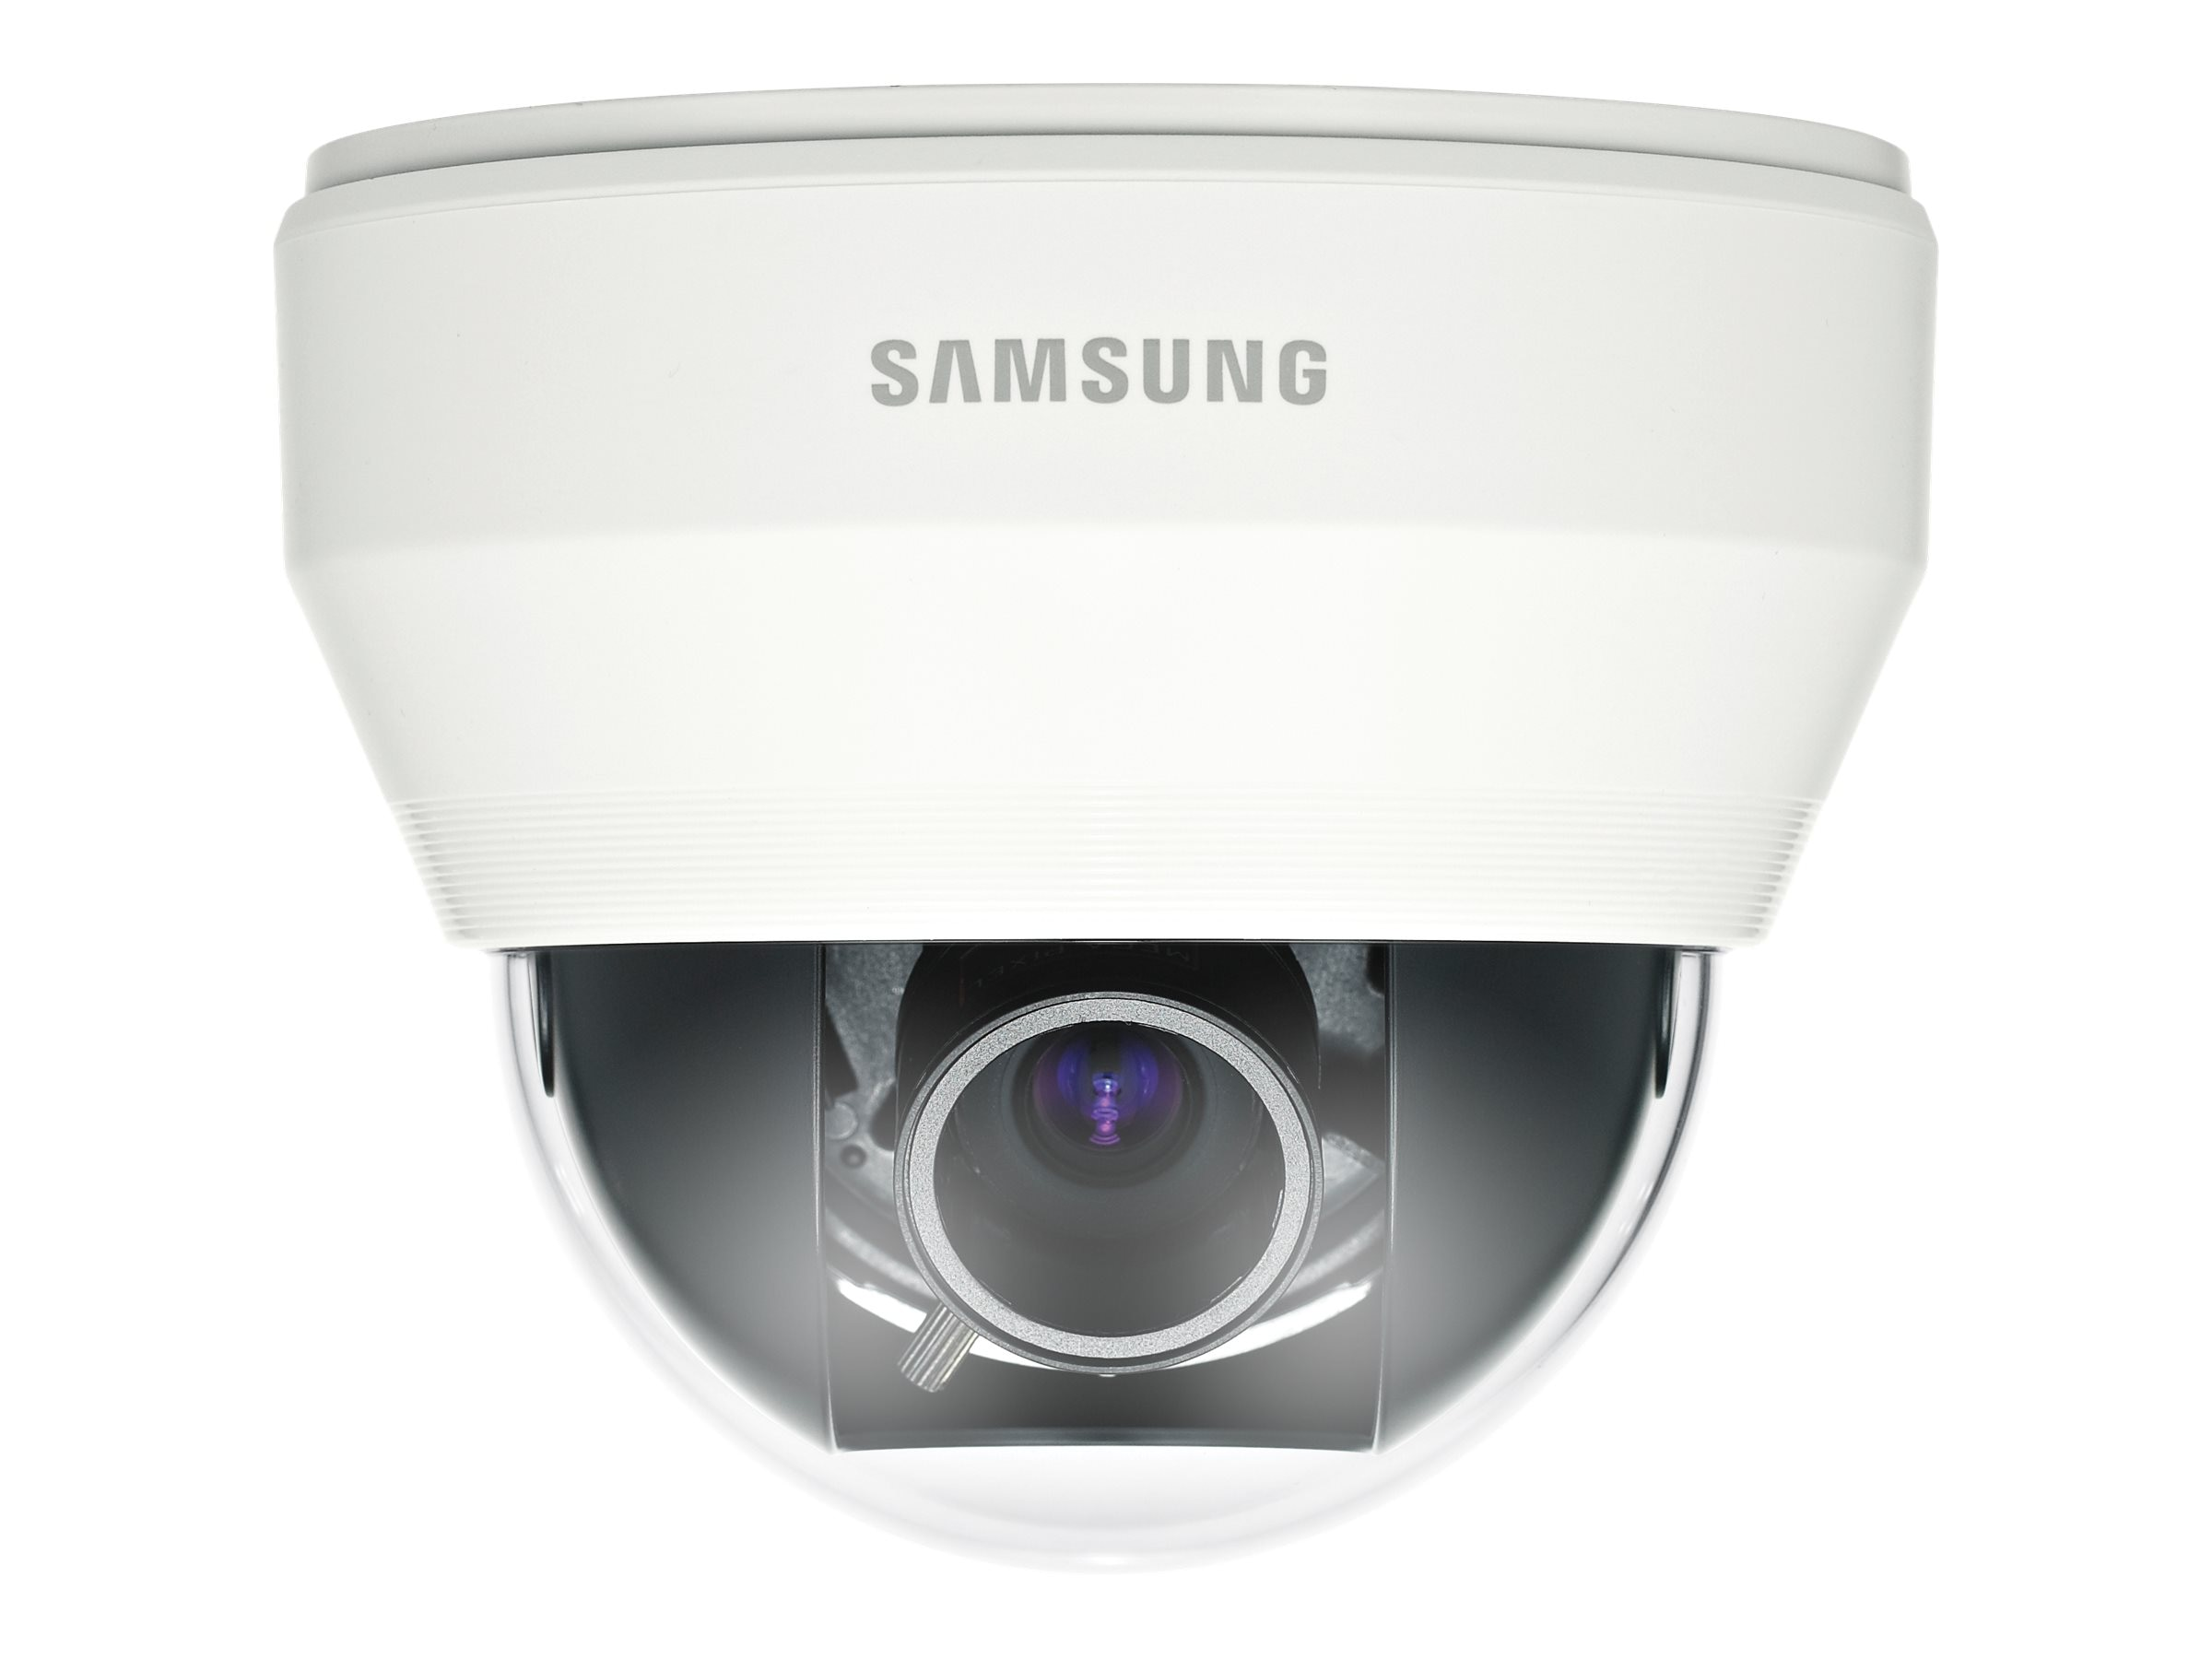 Samsung 1280H Wide Dynamic Range Varifocal Dome Camera, White